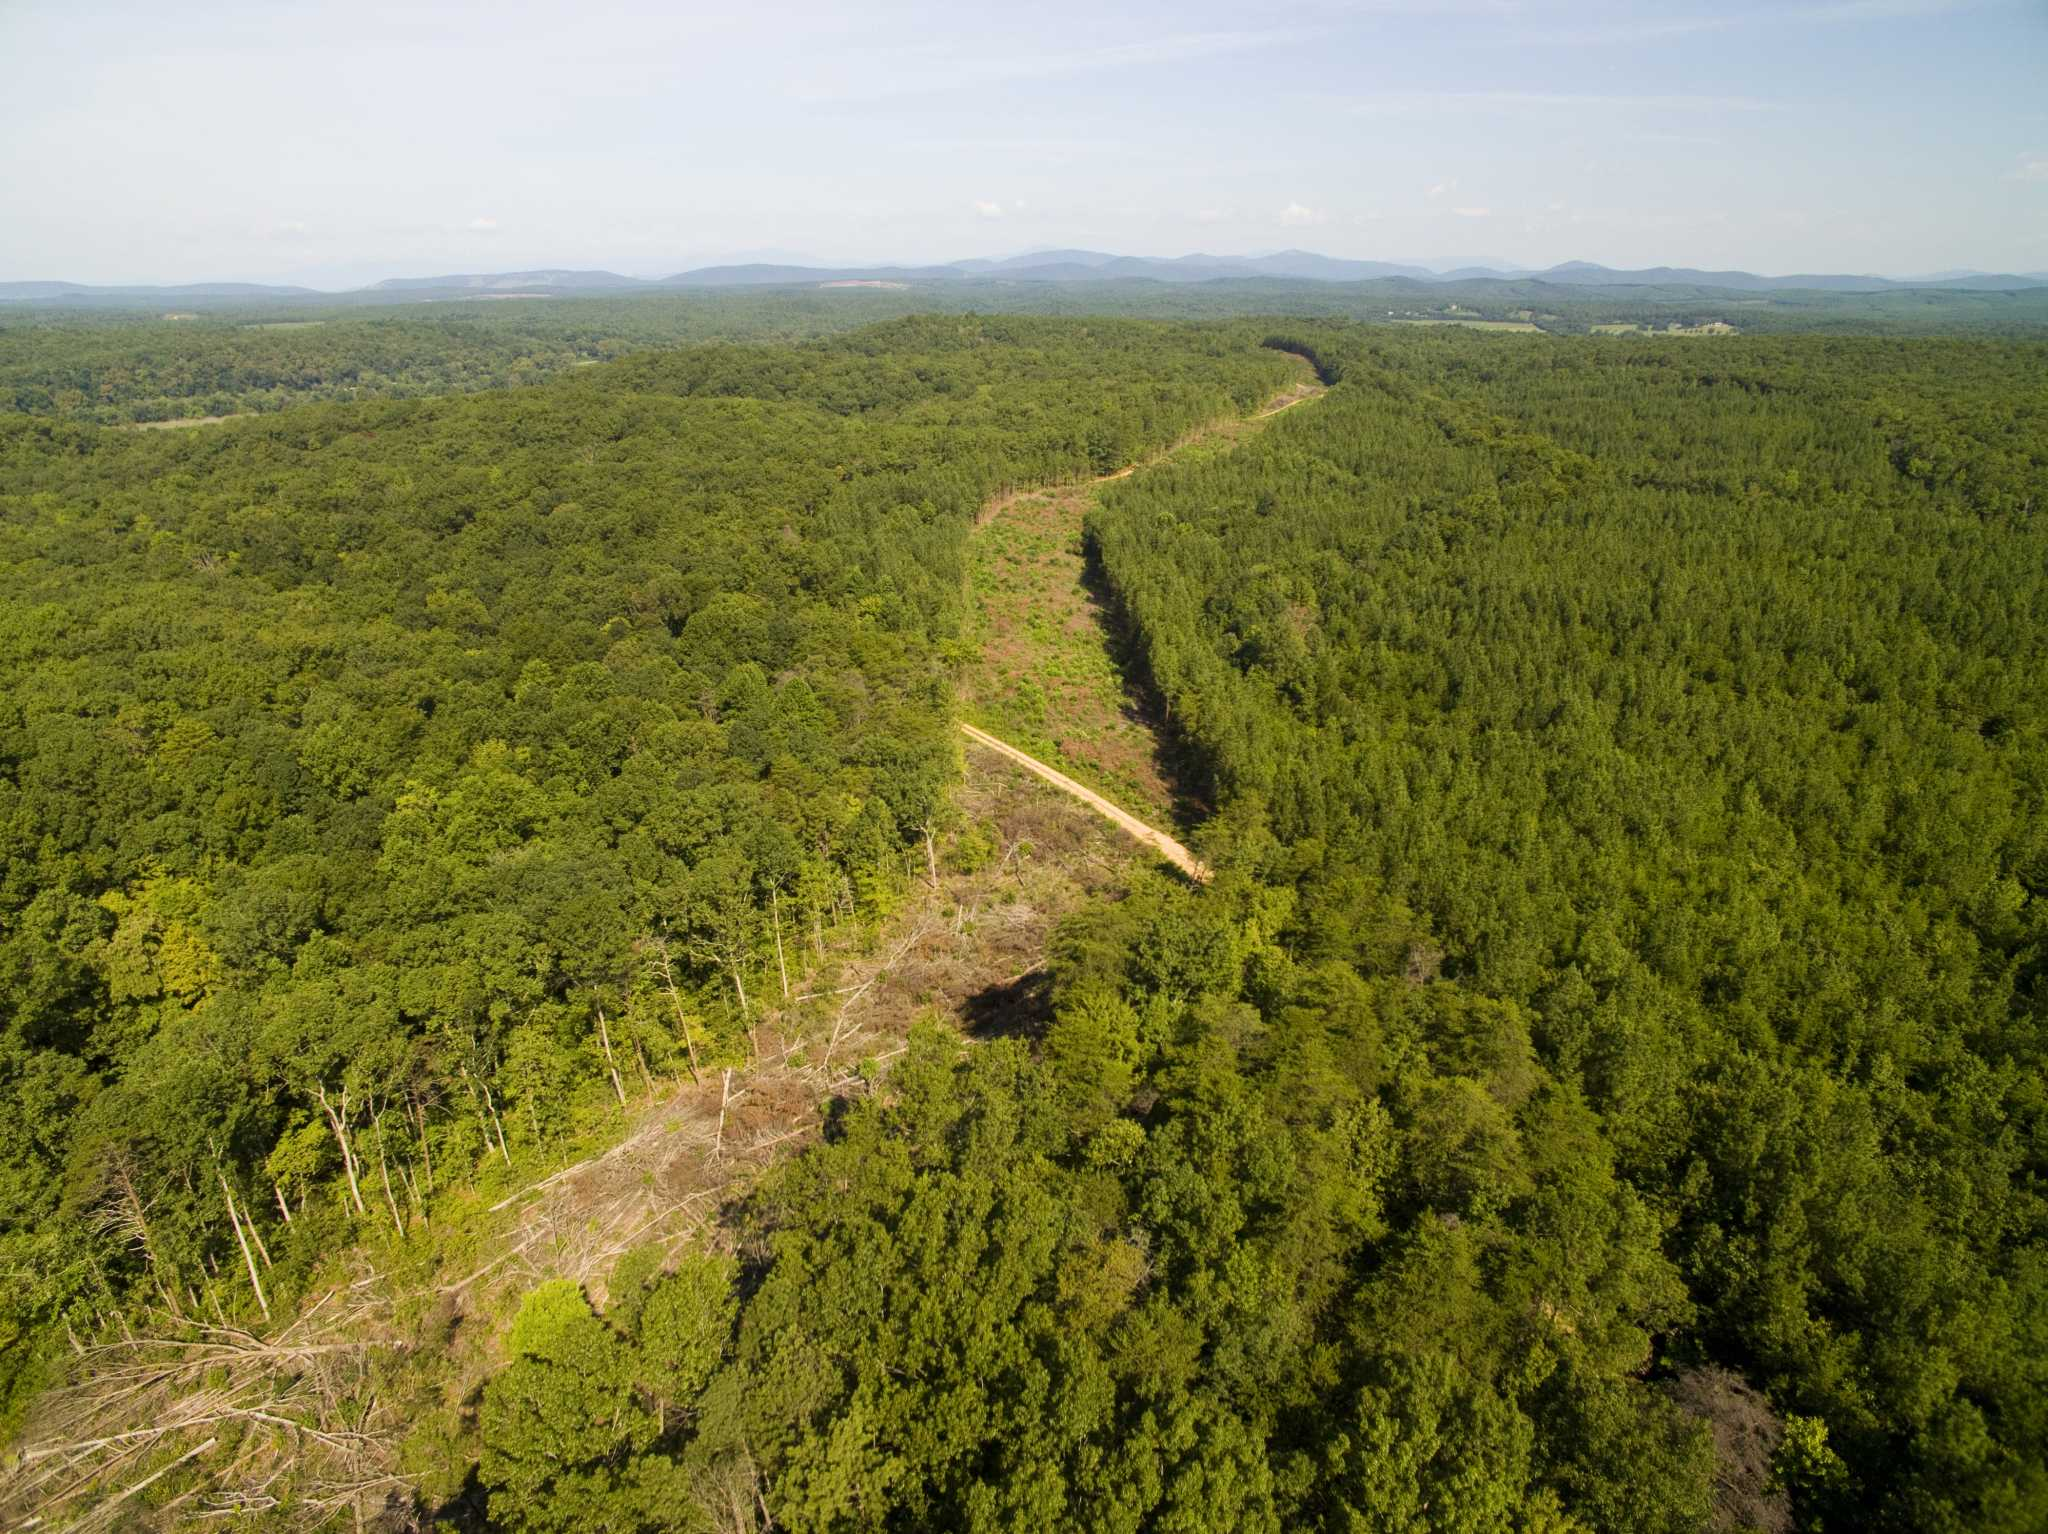 Court tosses permit for pipeline to cross Appalachian Trail